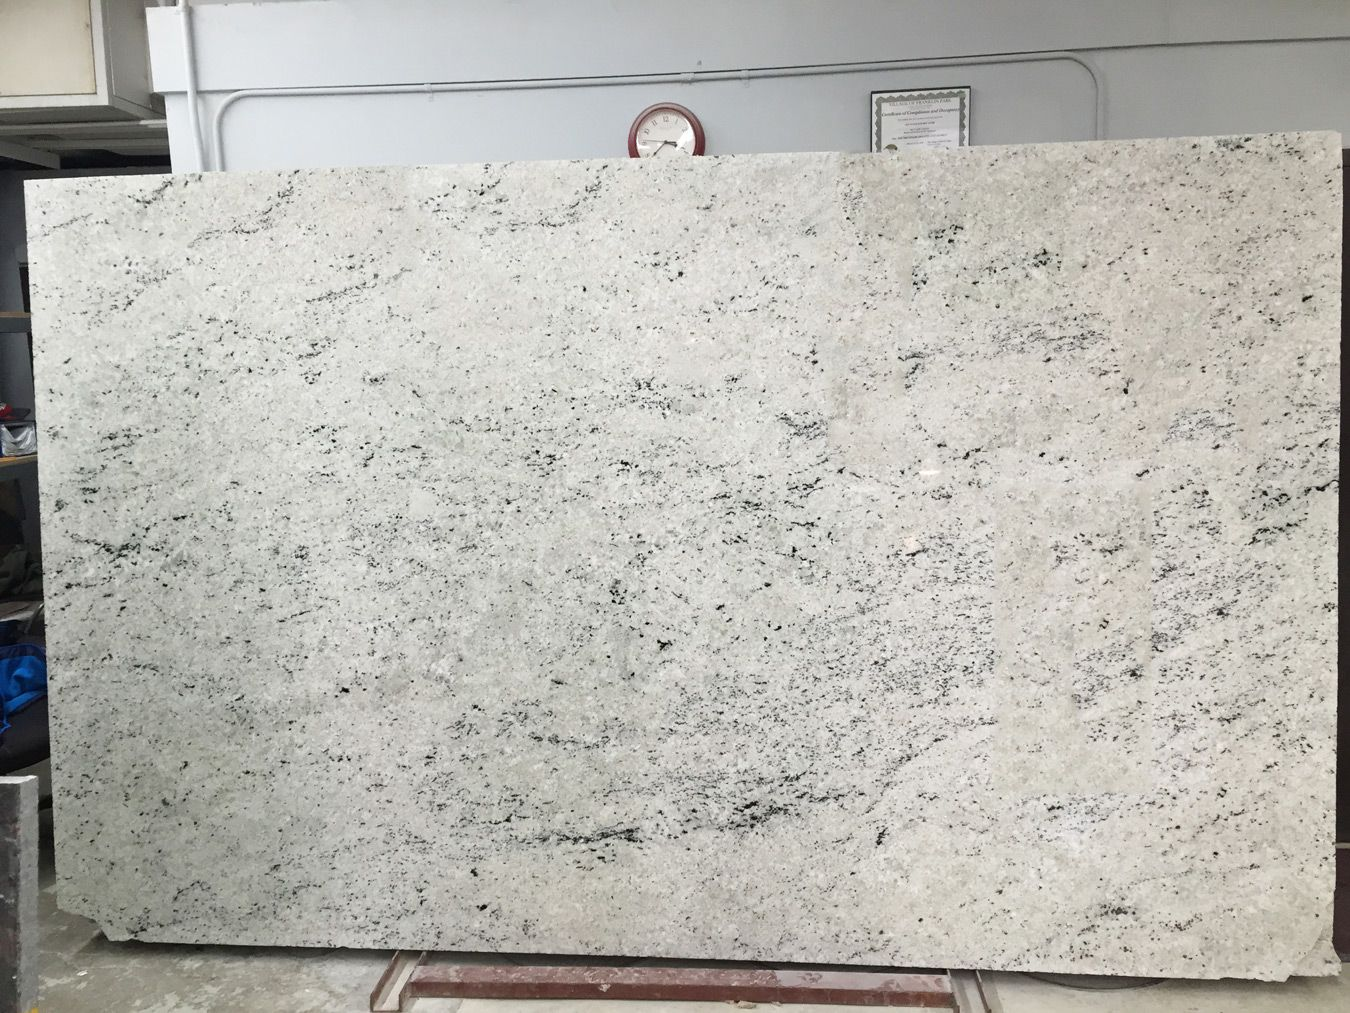 Lapidus premium product search marva marble and granite - The Granite I Want For The New Kitchen So Many Variations Ice White Granite Polished Kitchen Ideas Pinterest Granite Polish White Granite And